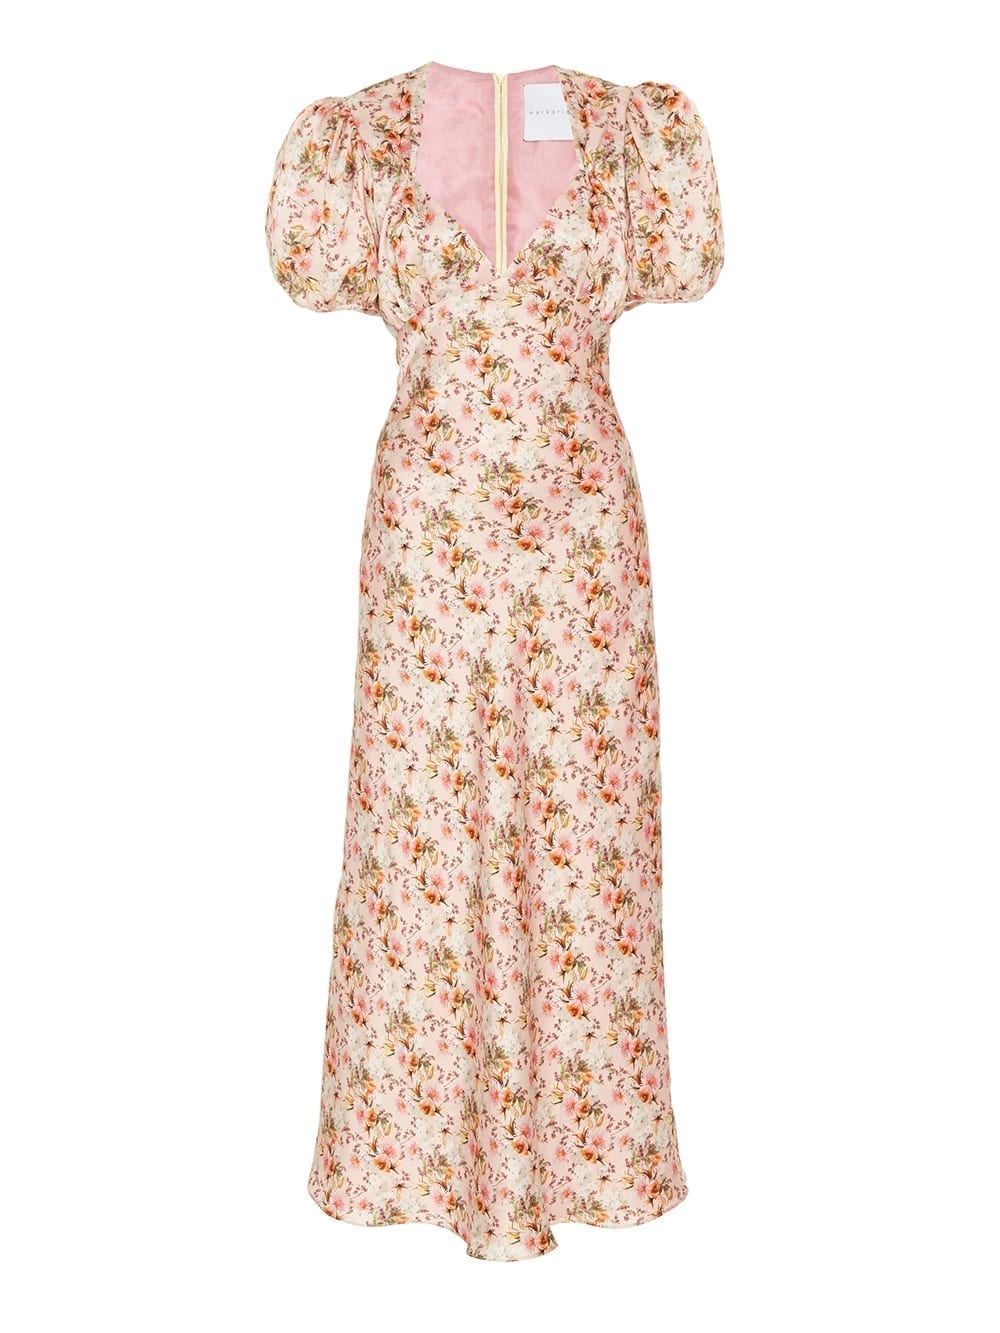 MARKARIAN Titian Floral Silk Dress